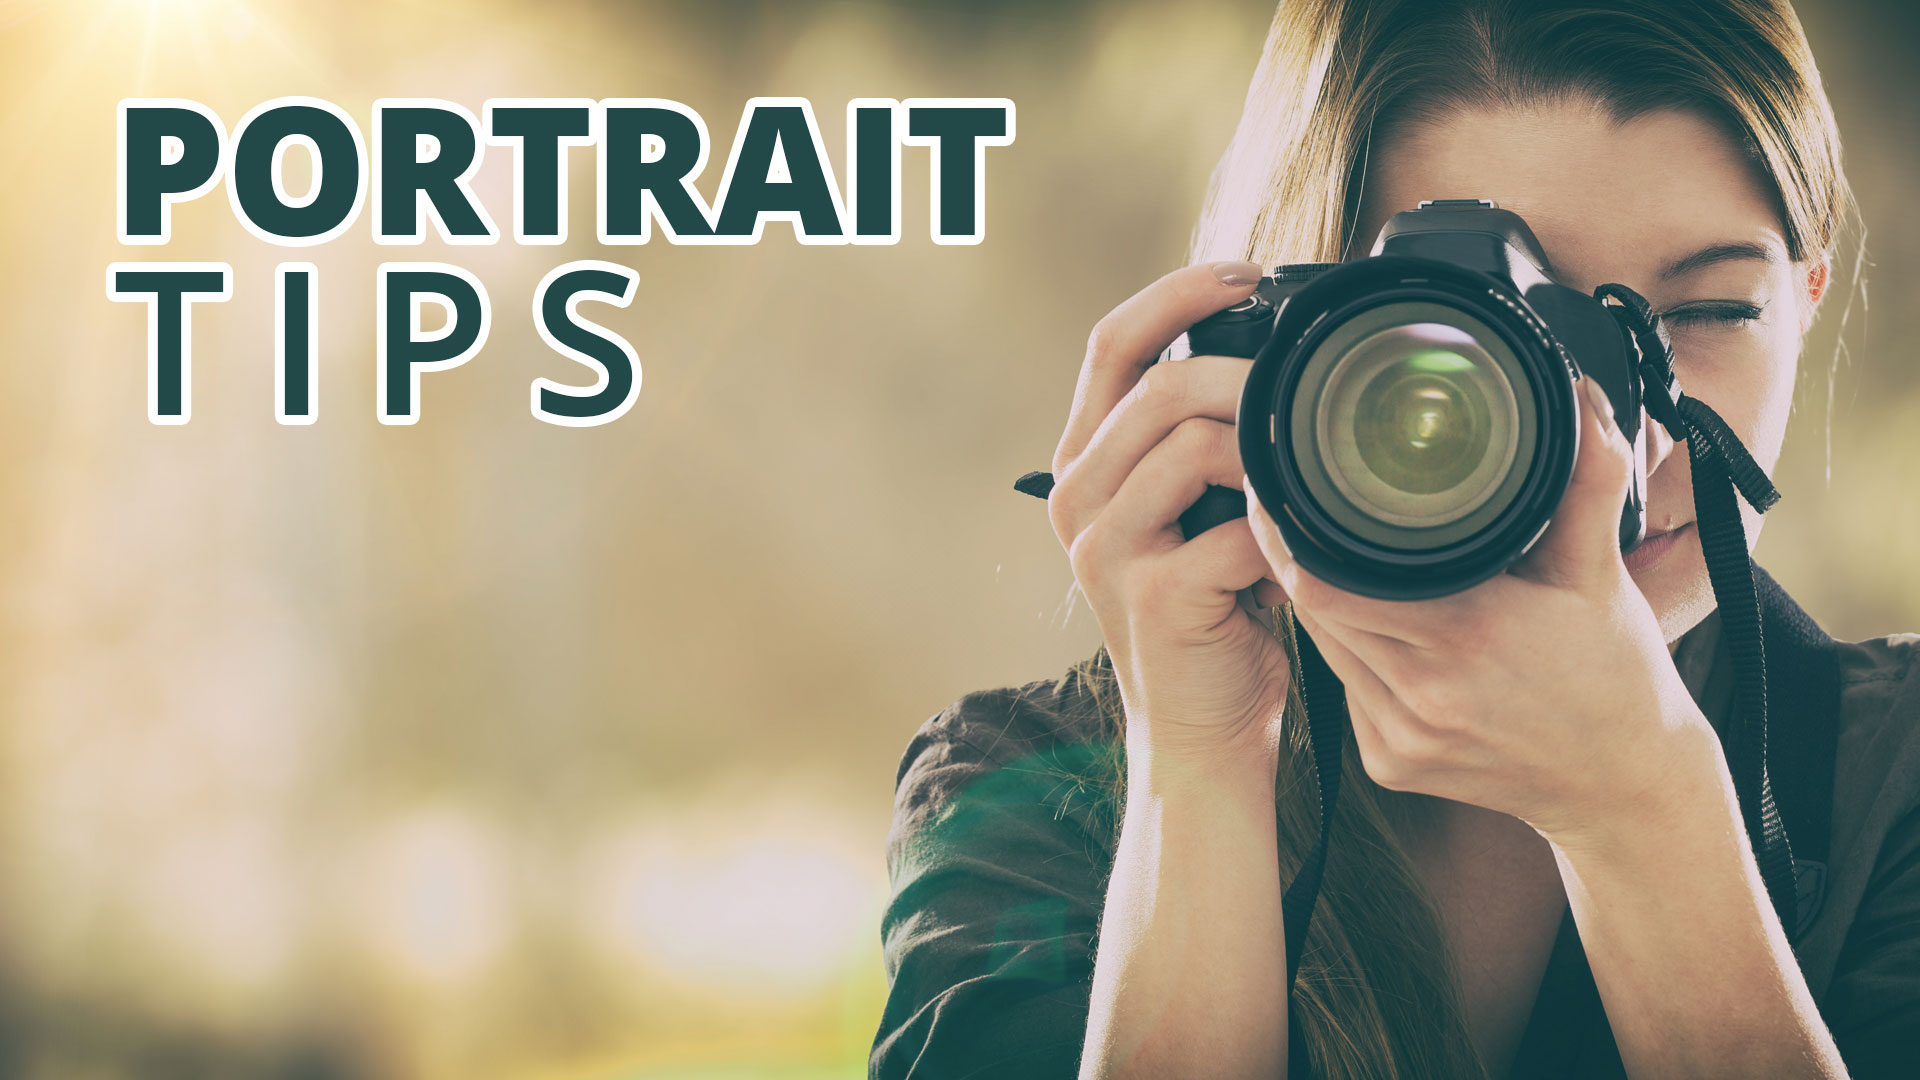 Portrait Tips: Avoid creepy eyes